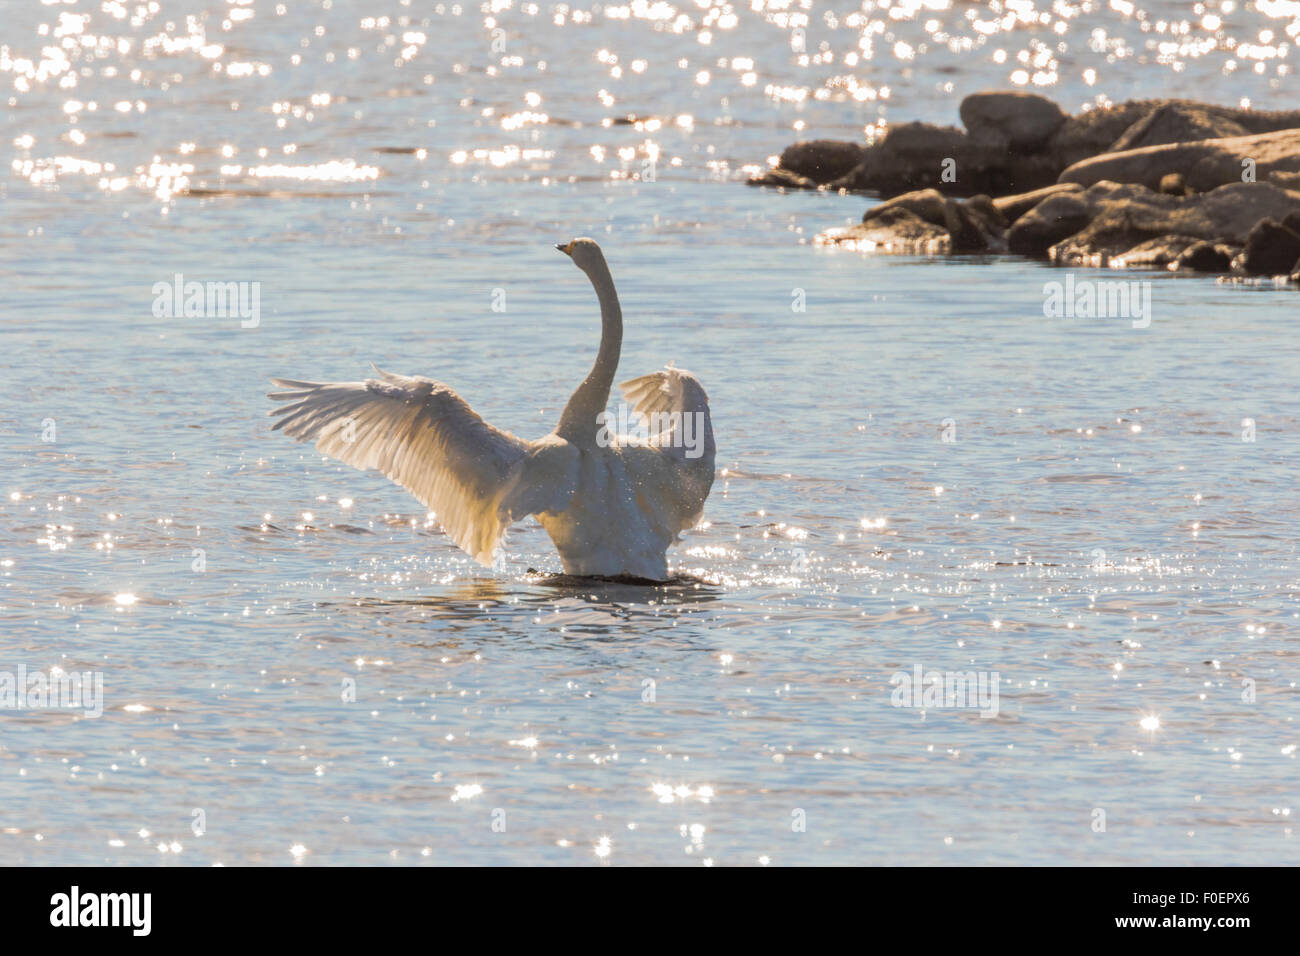 Whooper swan, Cygnus cygnus, standing up in the water and flapping his wings, bright sunshine making reflections Stock Photo